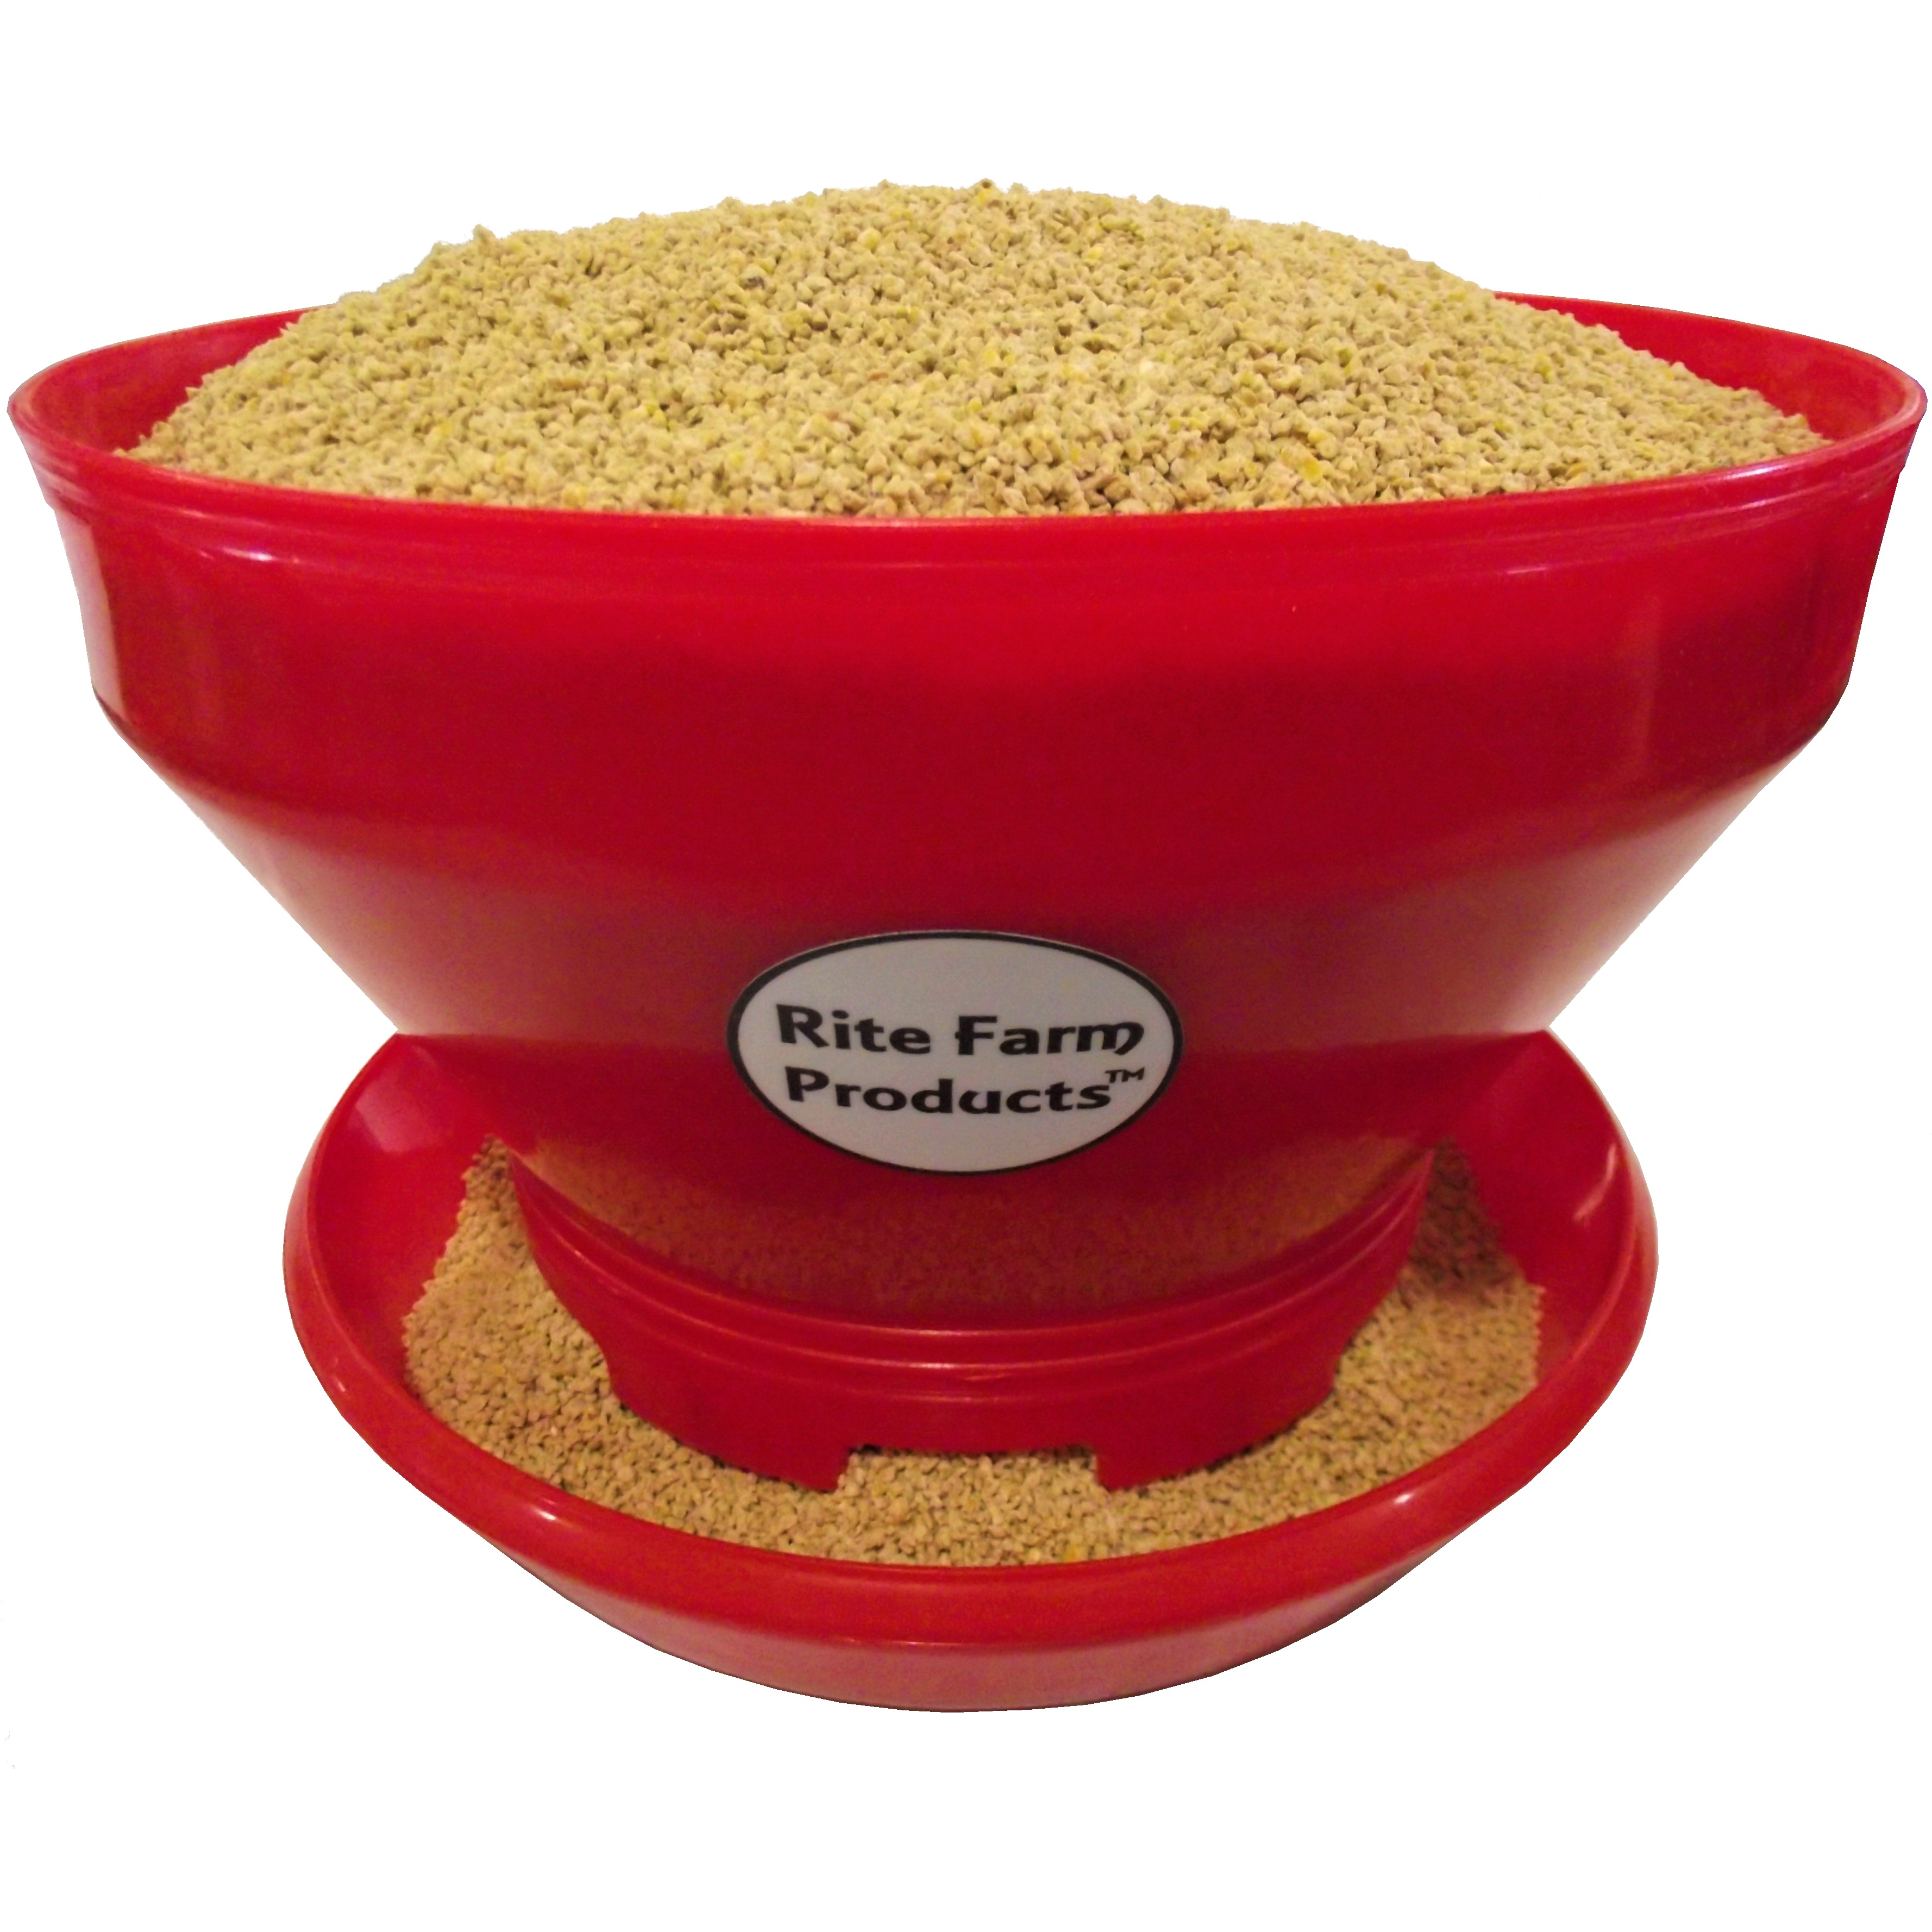 1 RITE FARM PRODUCTS TURBO PRO 10# CAPACITY BABY CHICK FEEDER POULTRY CHICKEN